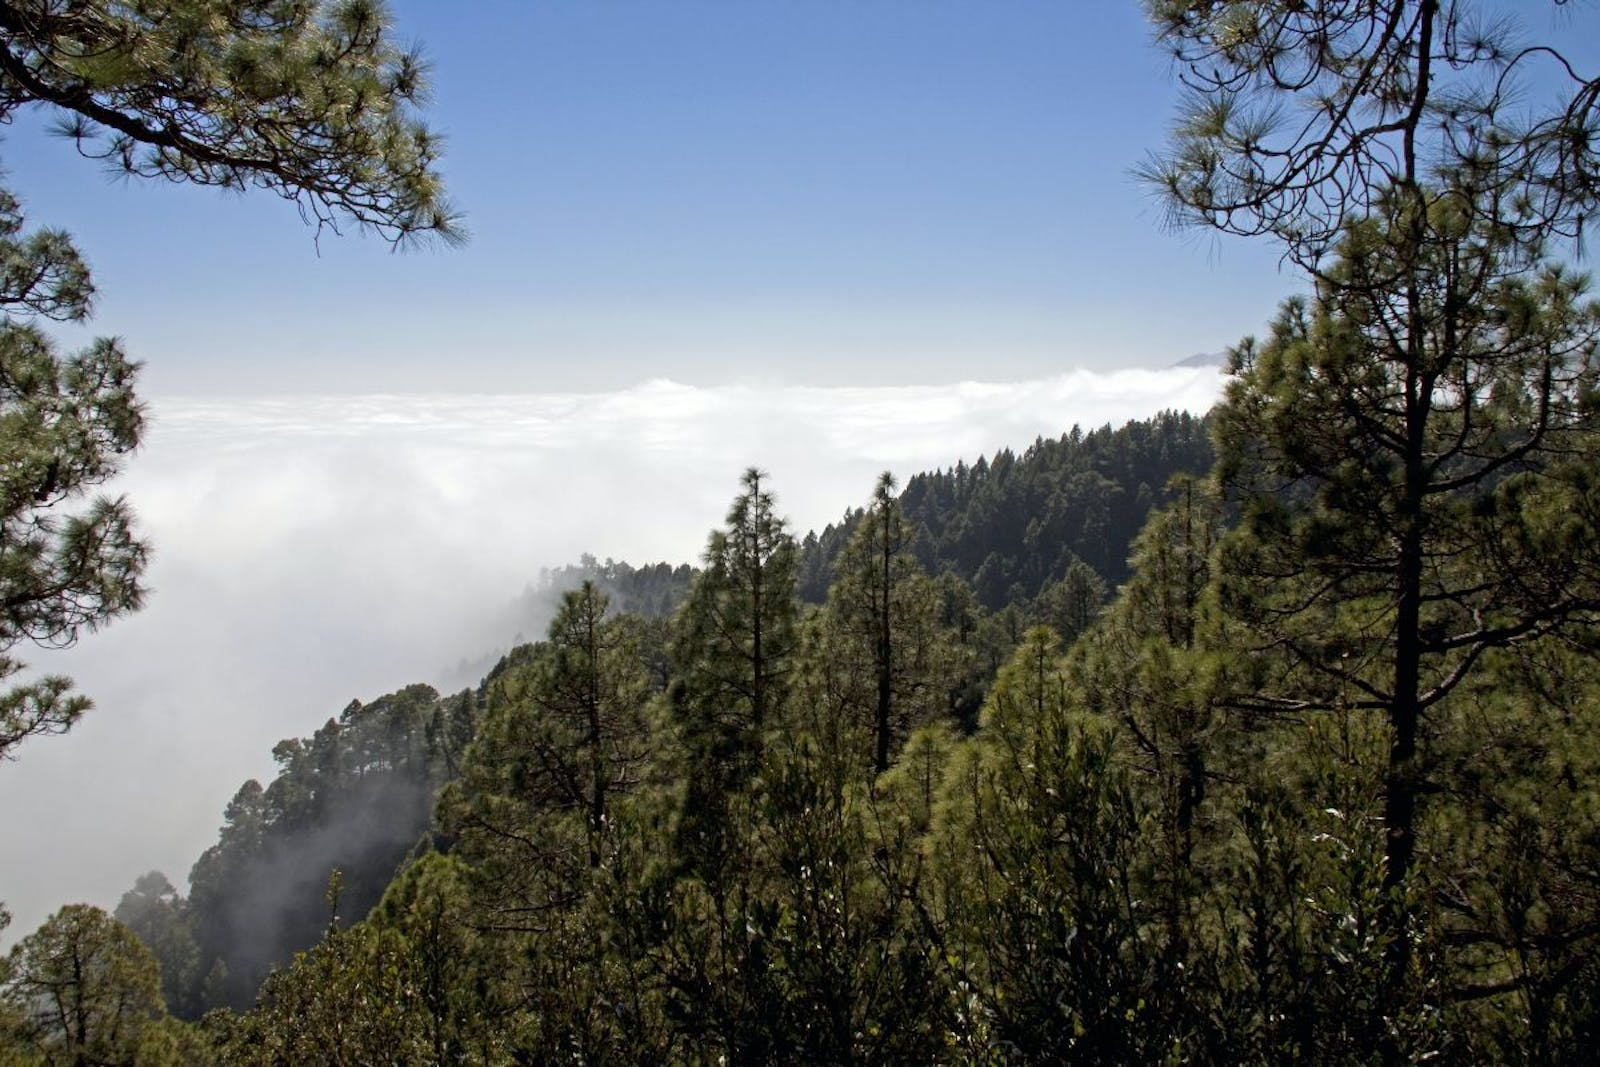 Canary Islands Dry Woodlands and Forests